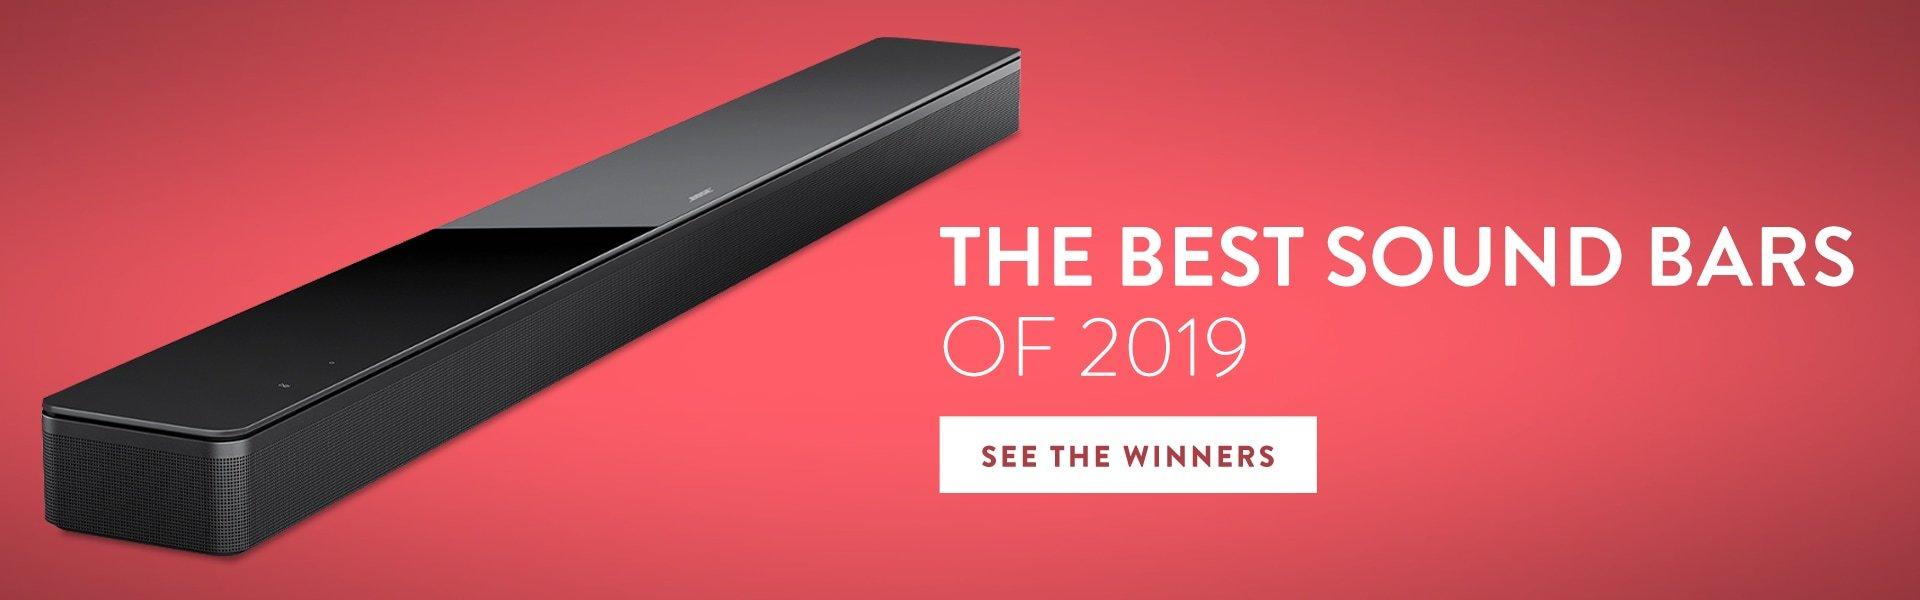 The Best Sound Bars of 2019